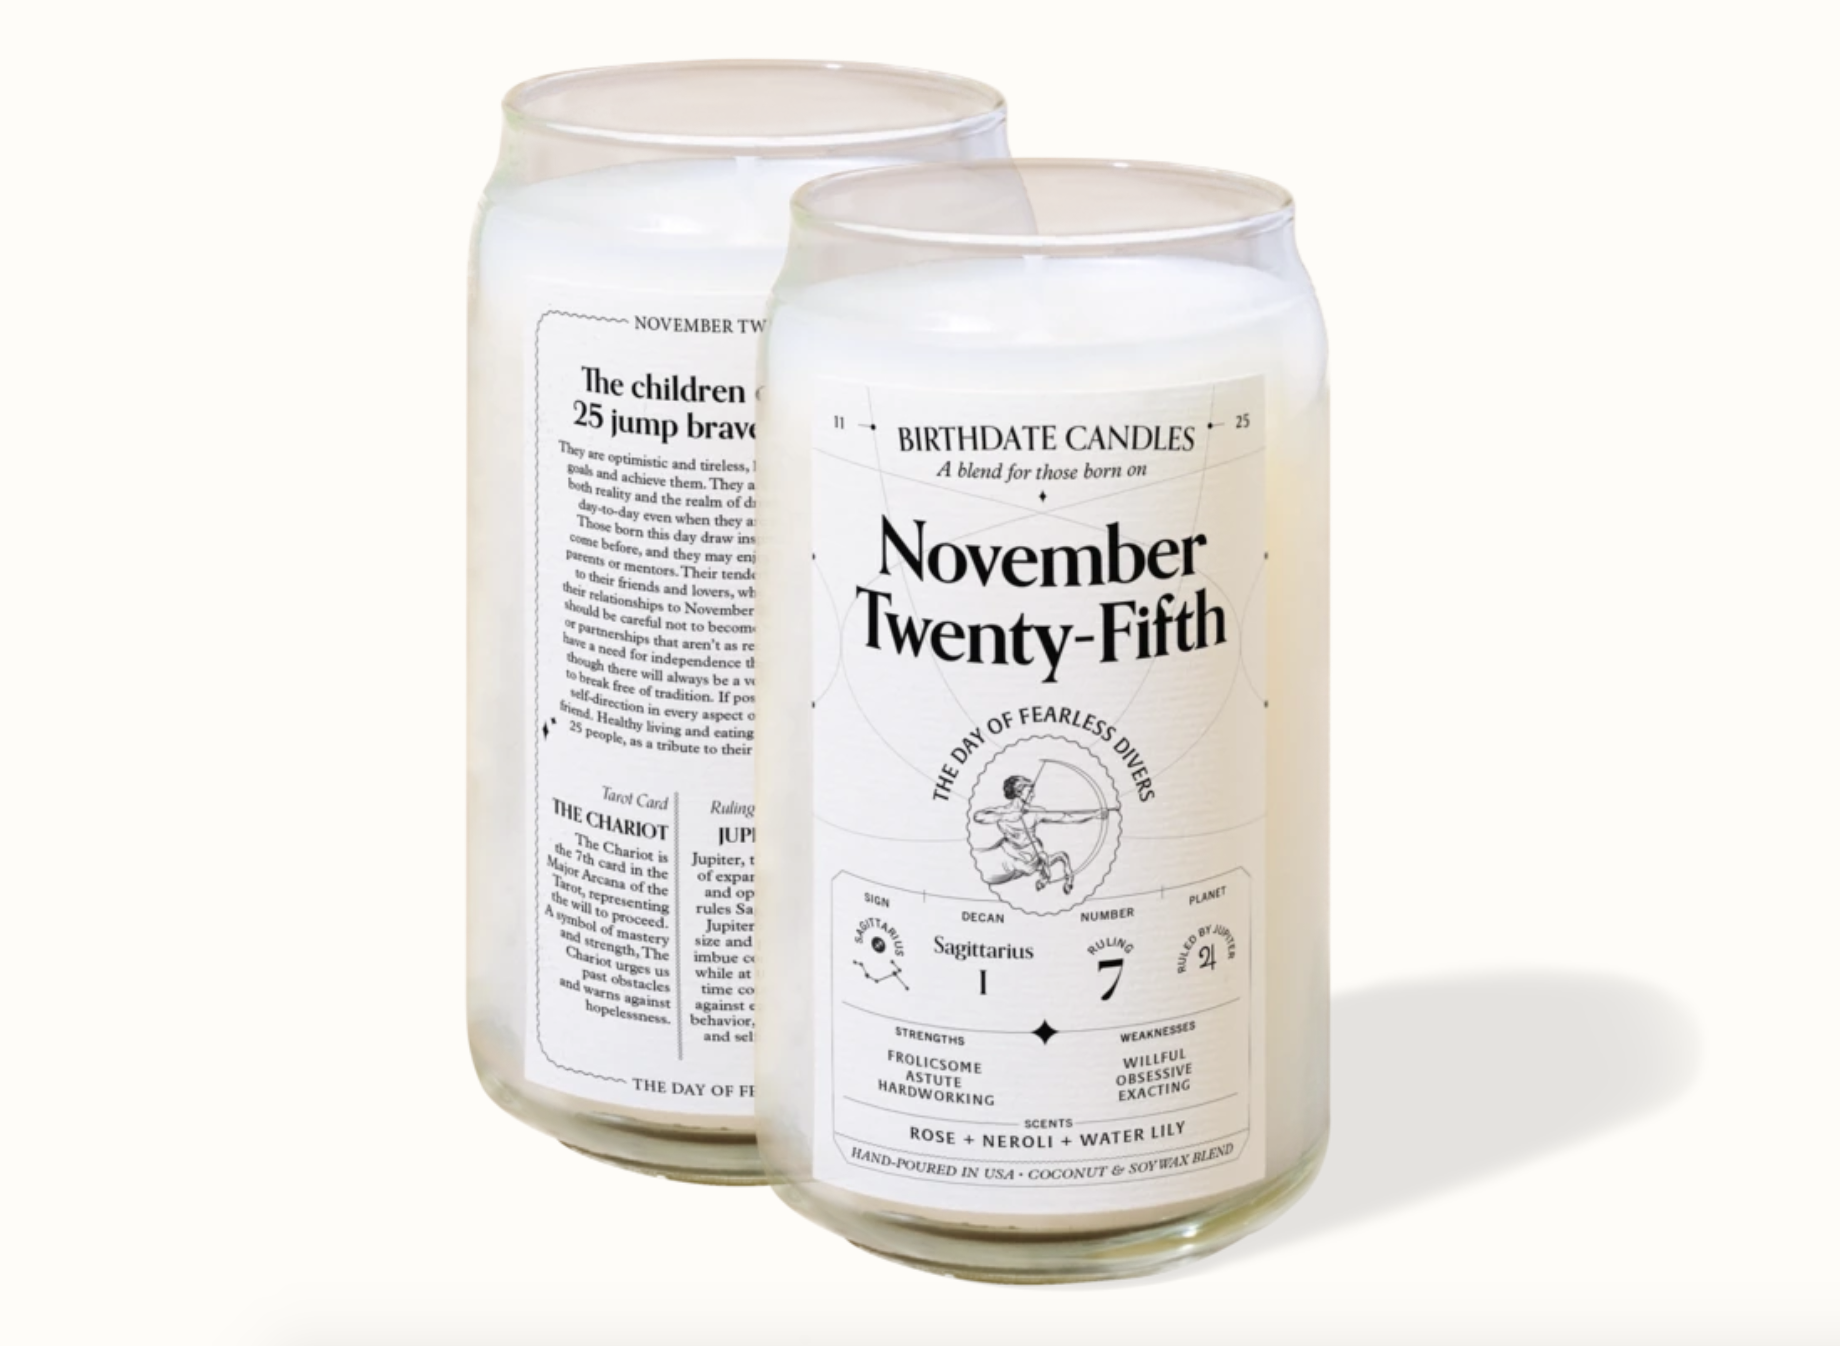 two november 25th birthdate candles